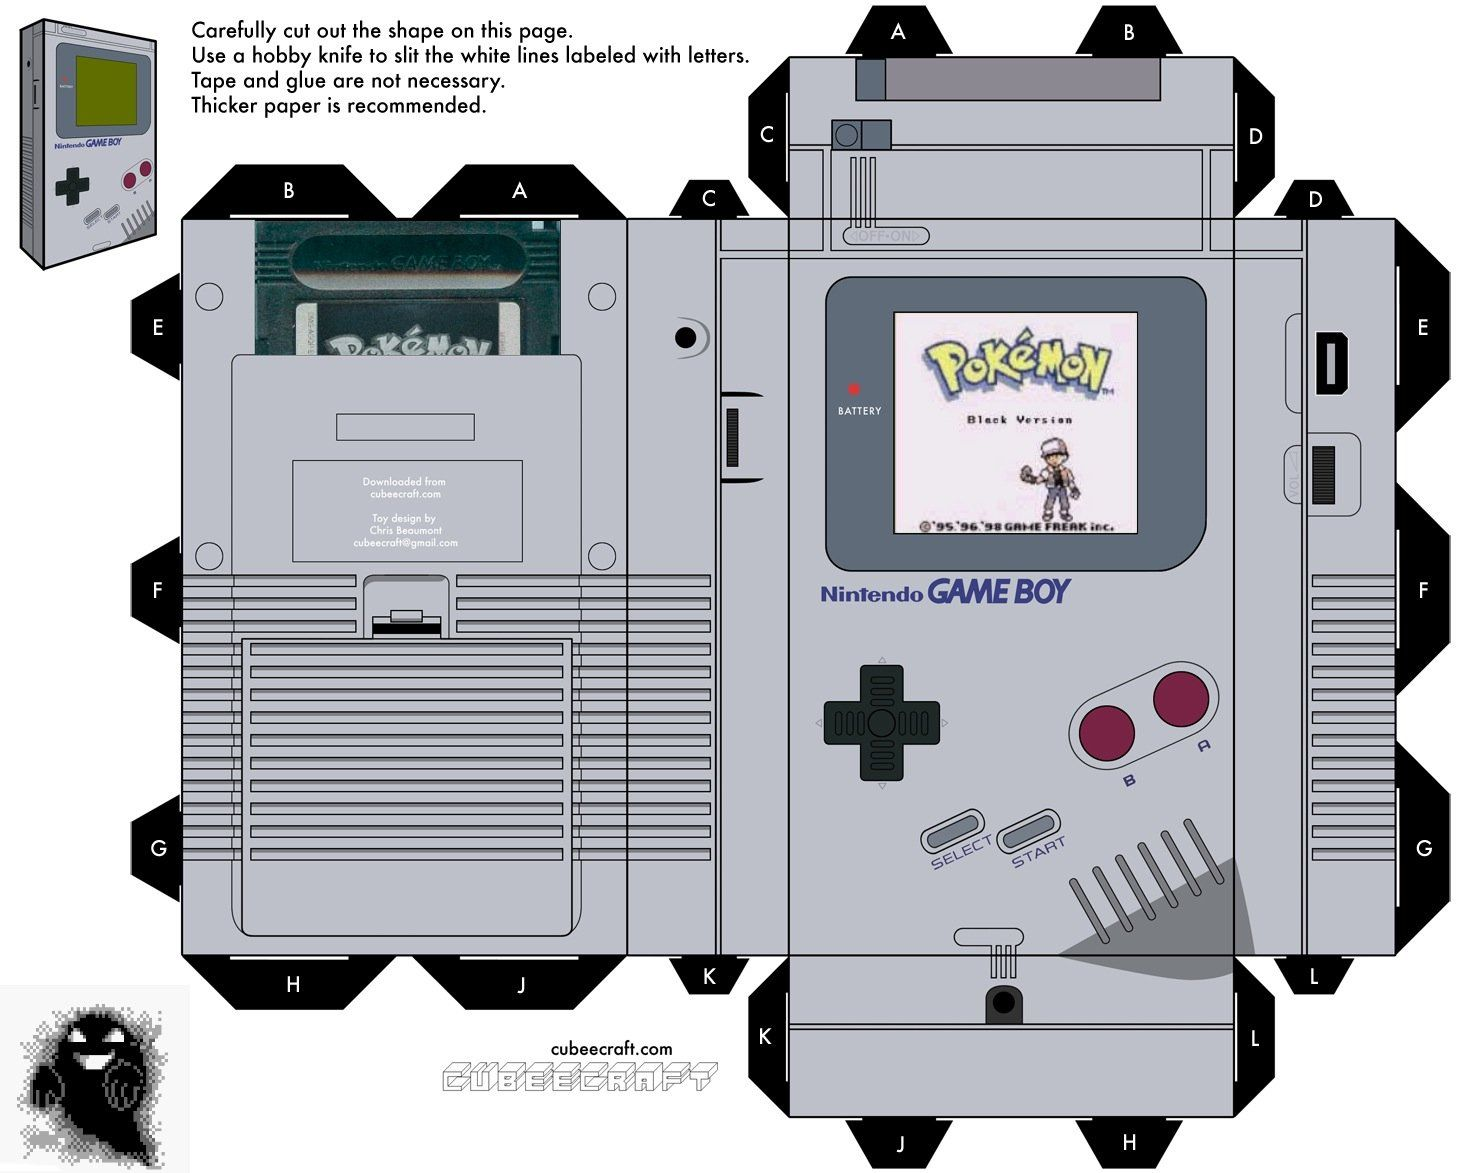 gameboy cutout to place boxes on tables geeky wedding ideas